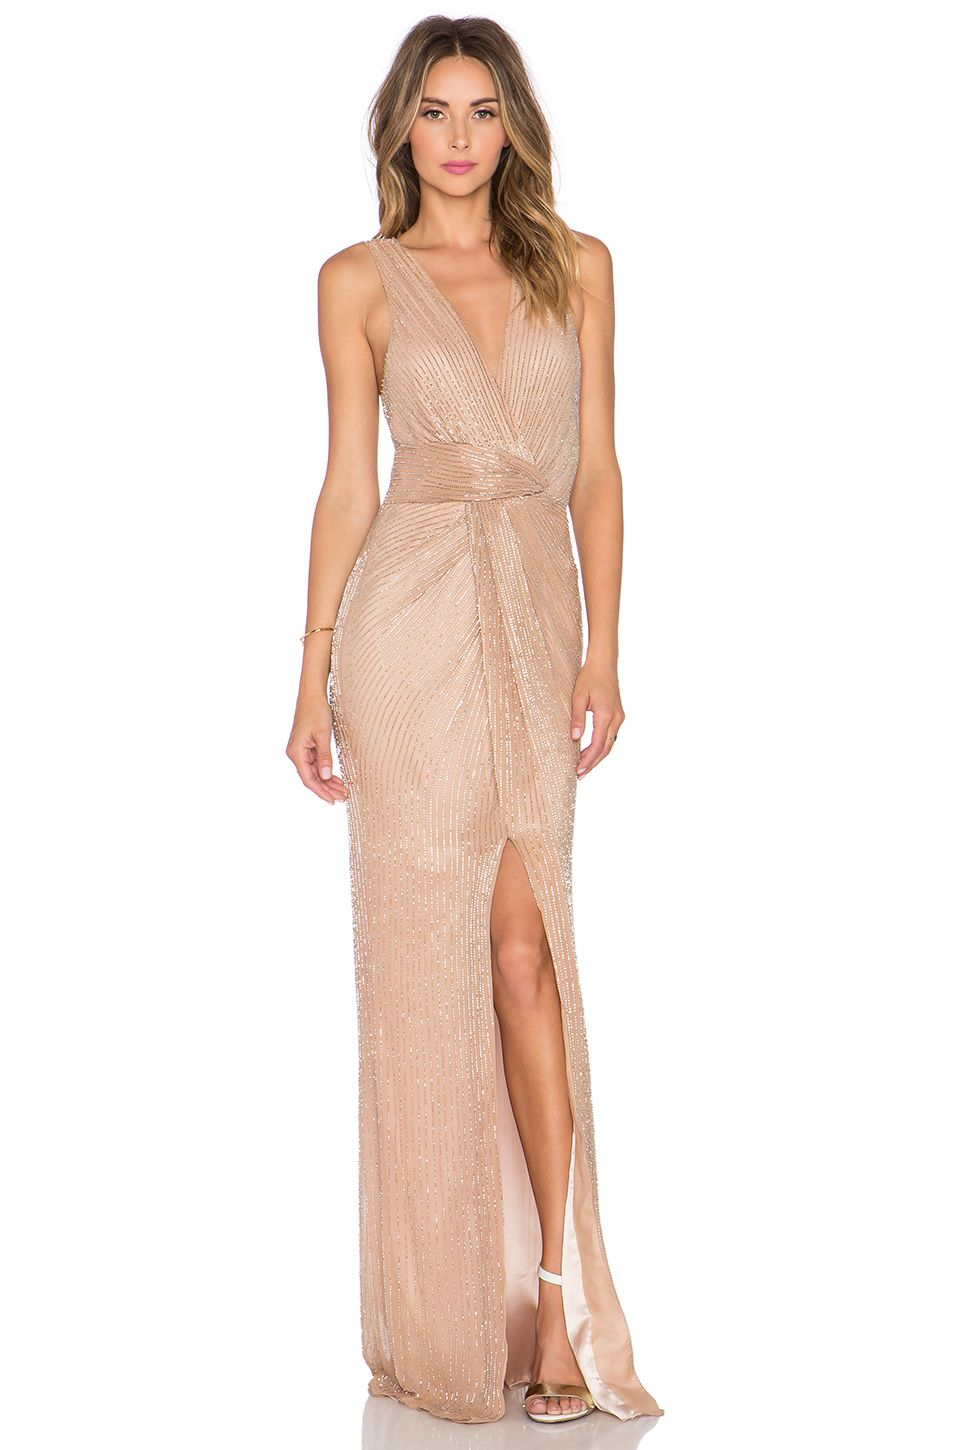 255e5e7192b Parker Black Monarch Dress in Blush